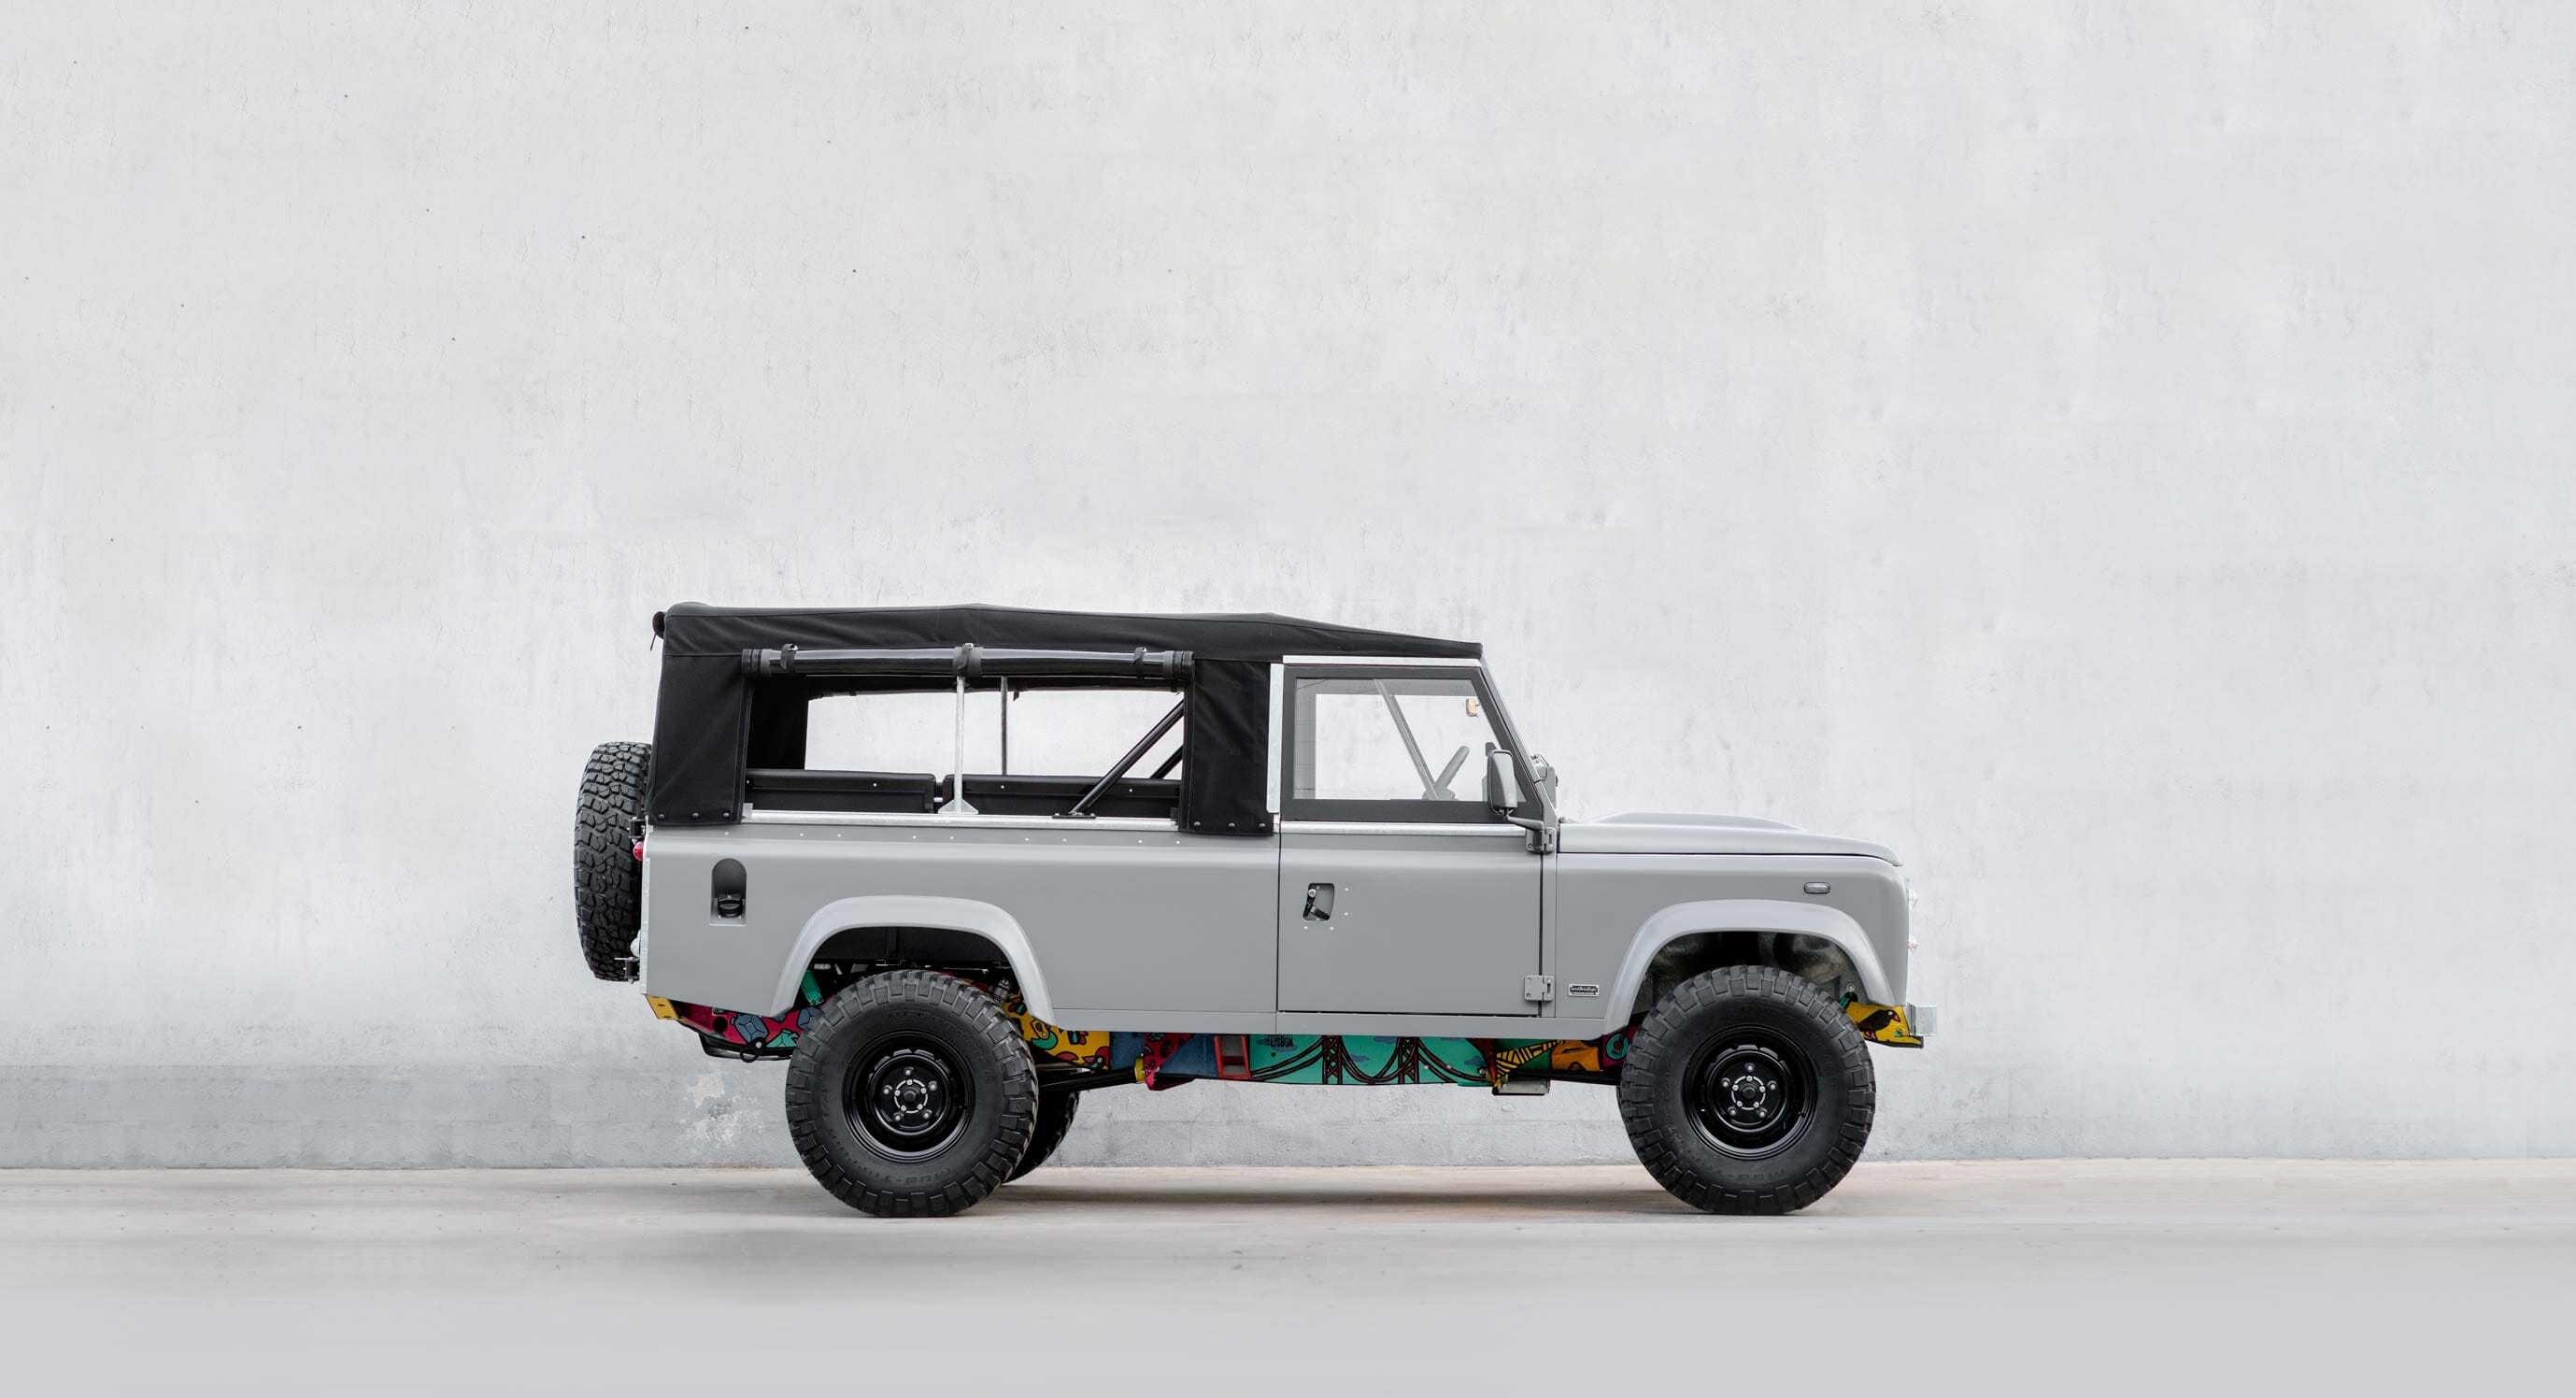 Drivable Art: CoolNVintage and Vasco Costa's Land Rover 110